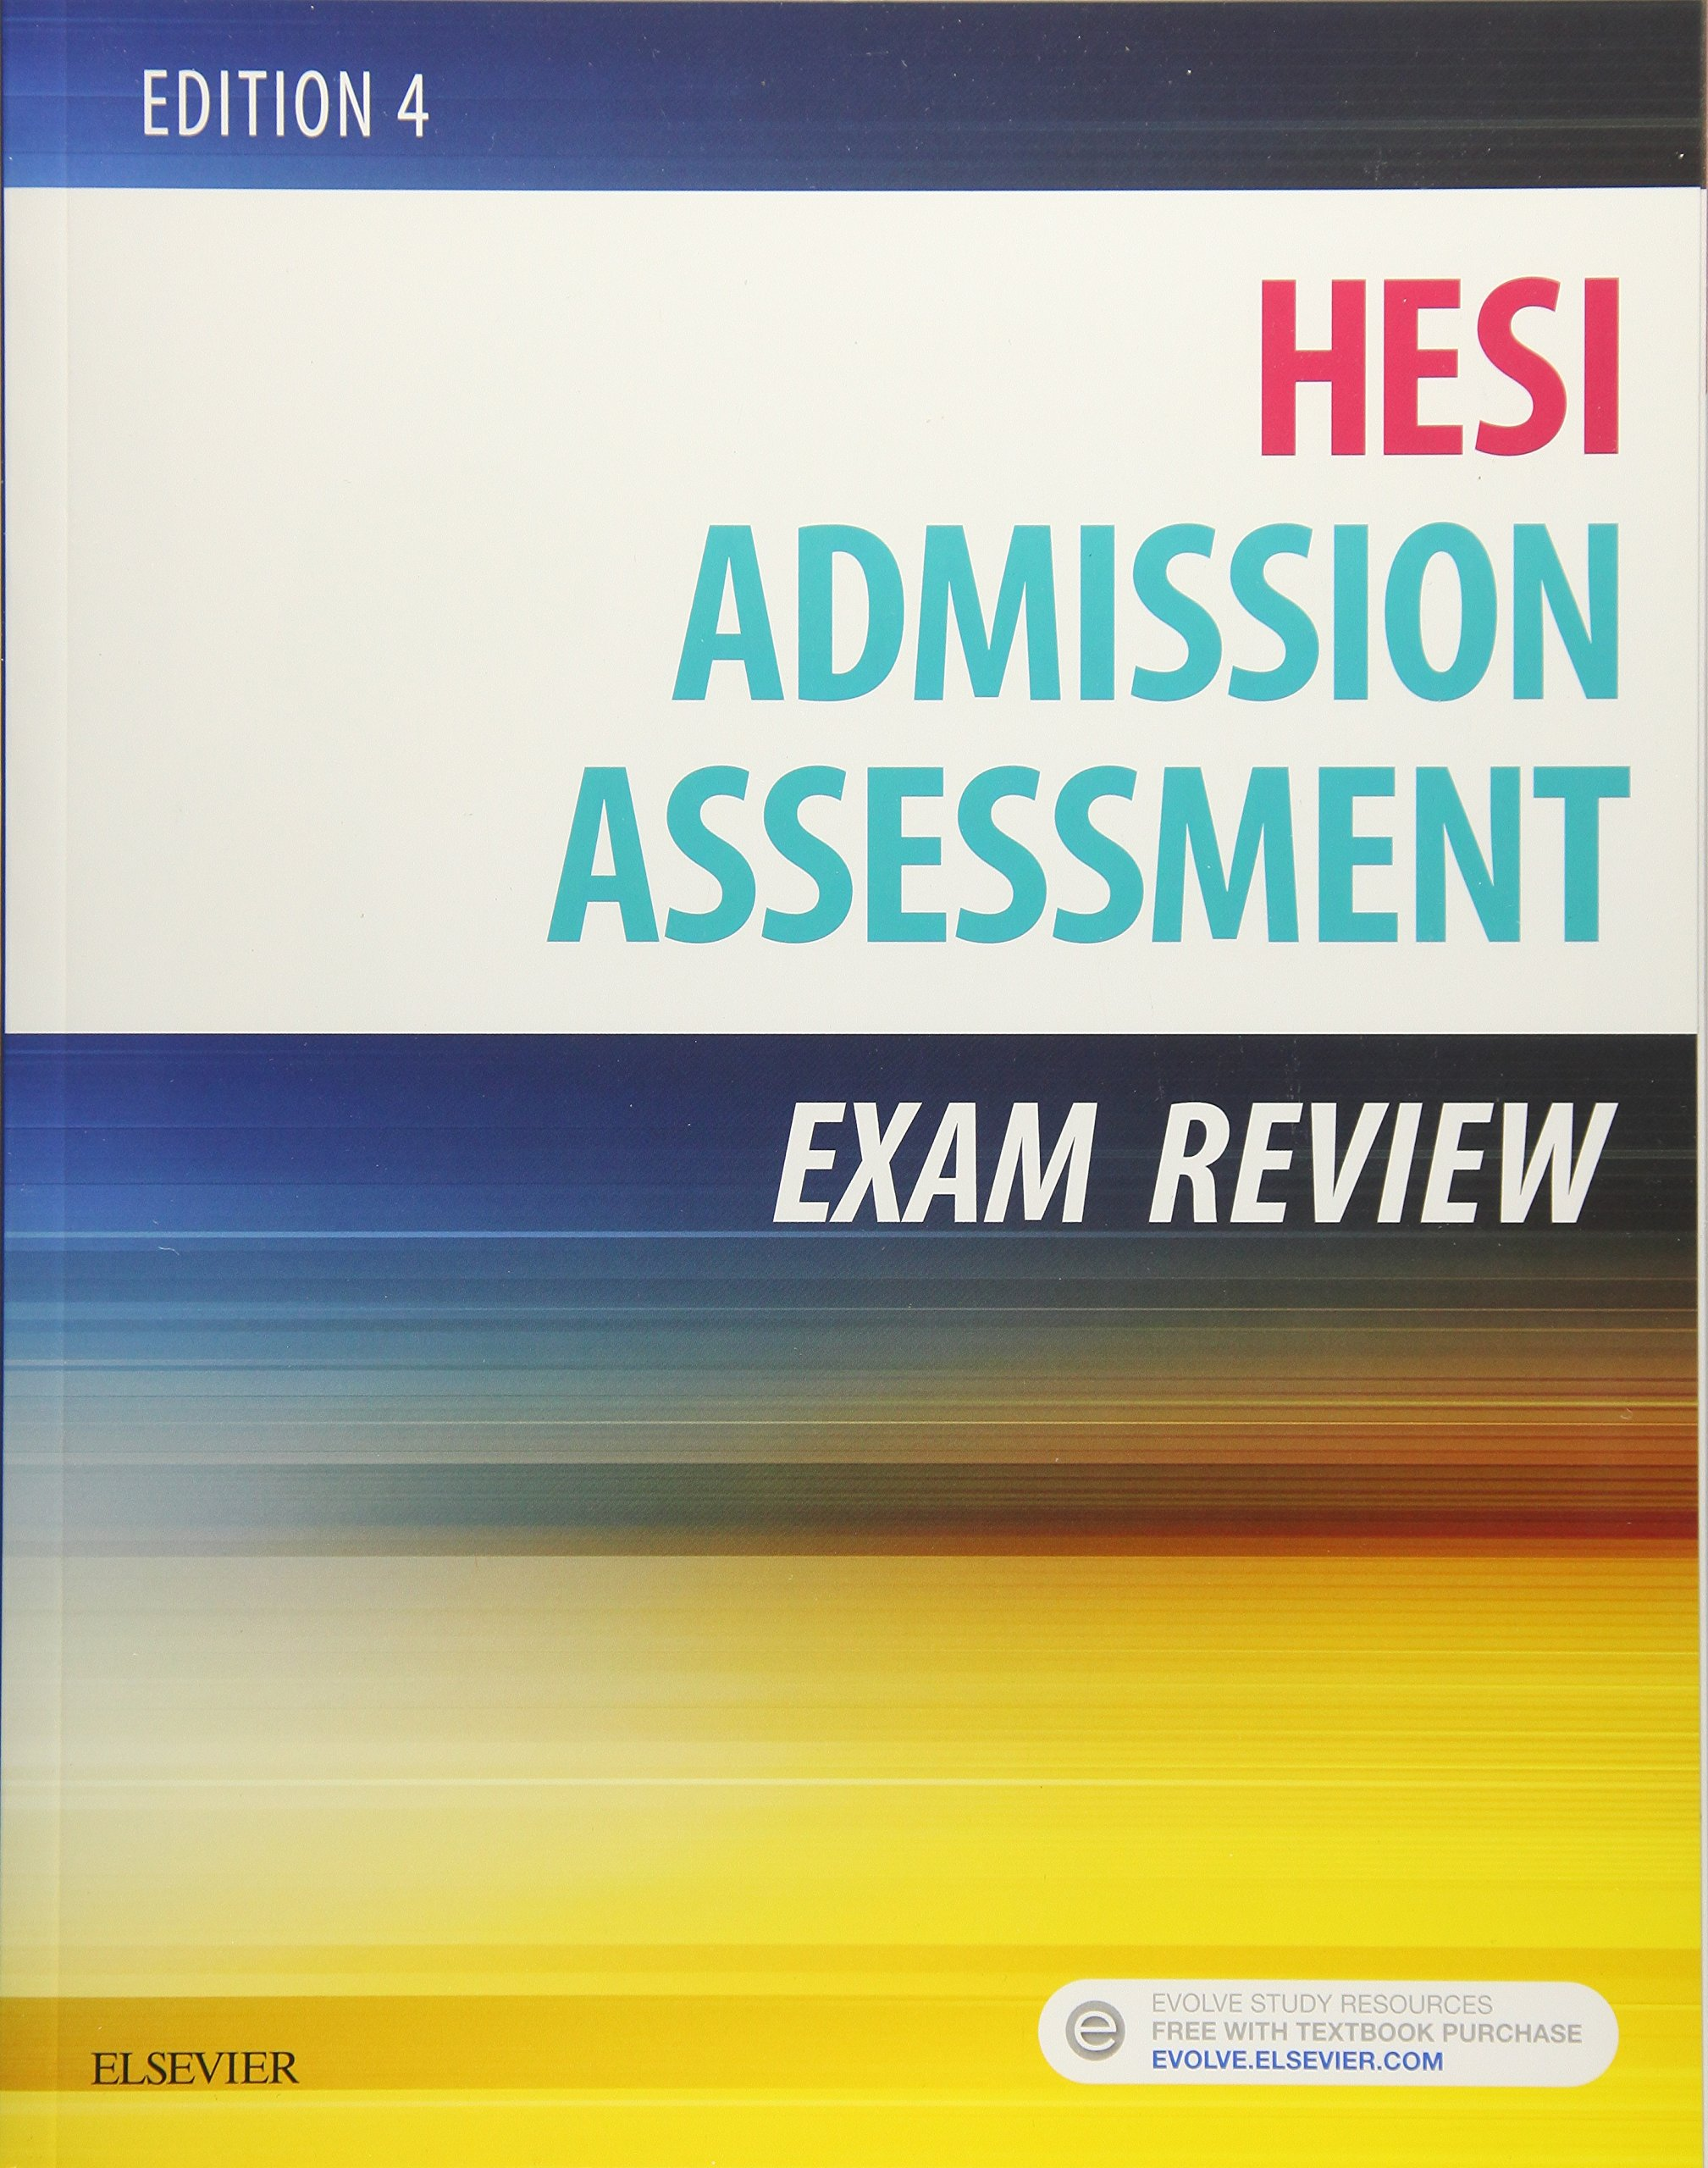 Admission Assessment Exam Review by Elsevier Science Health Science